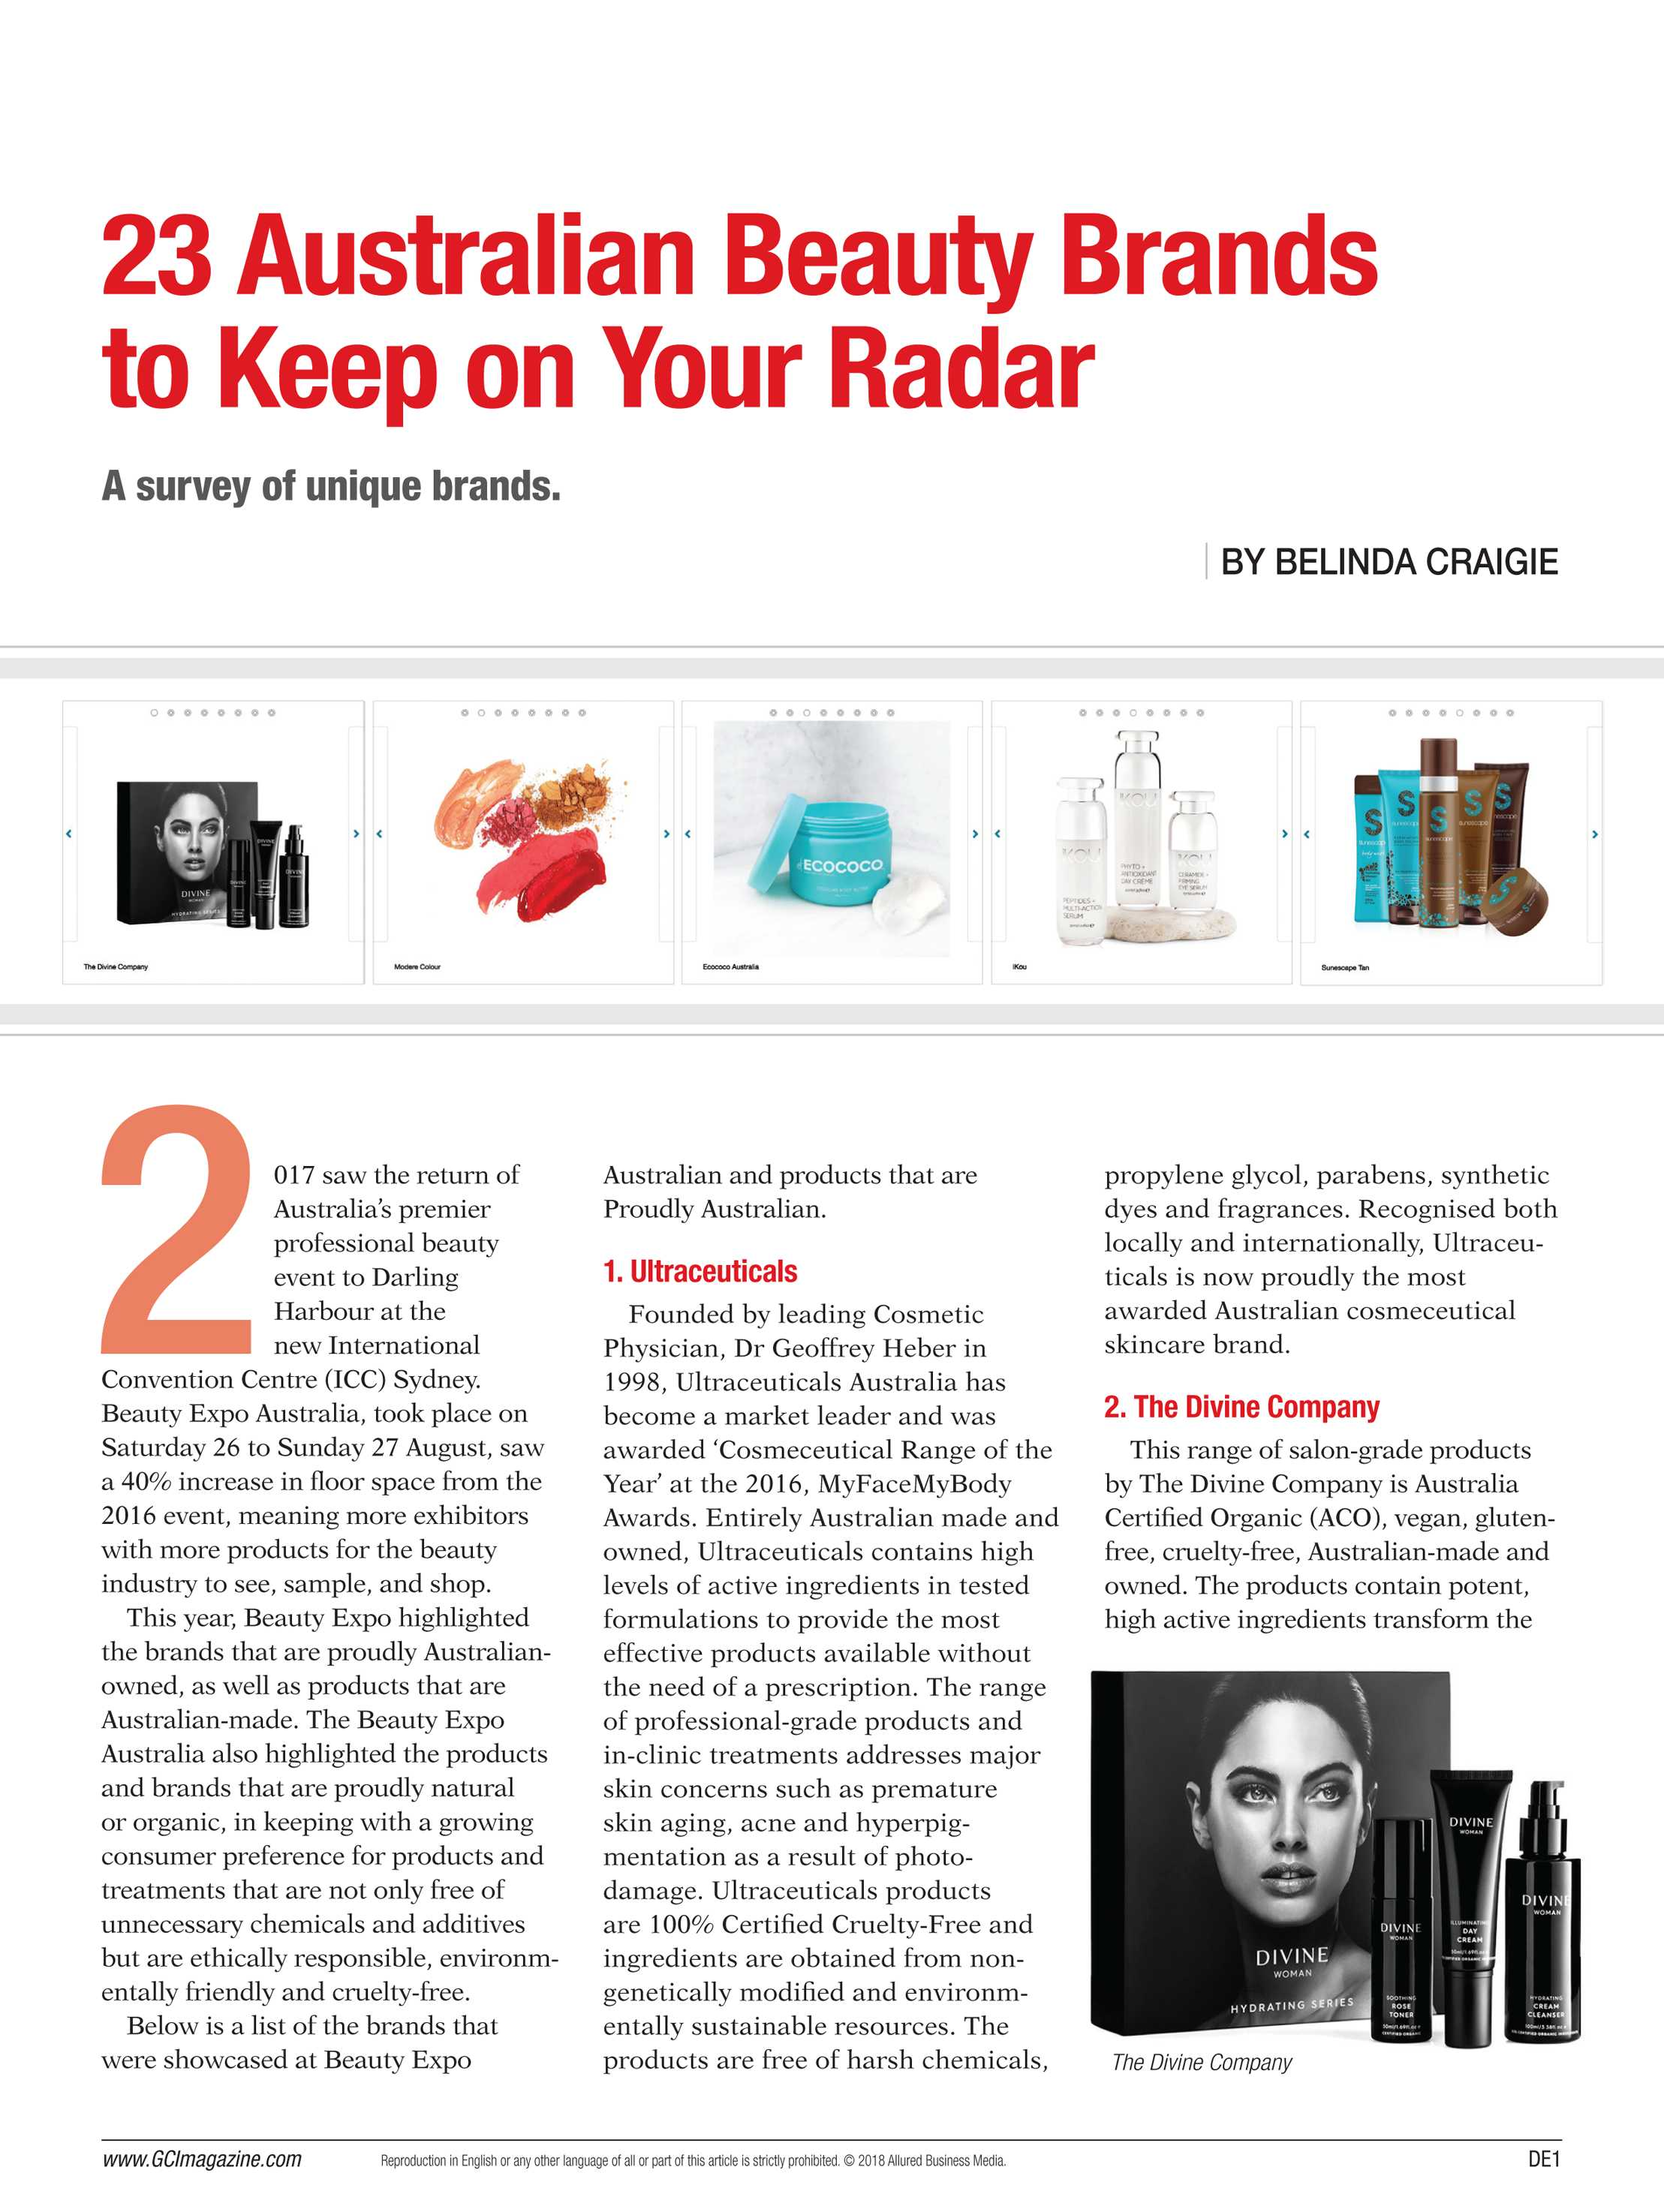 Global Cosmetic Industry Magazine - page DE1